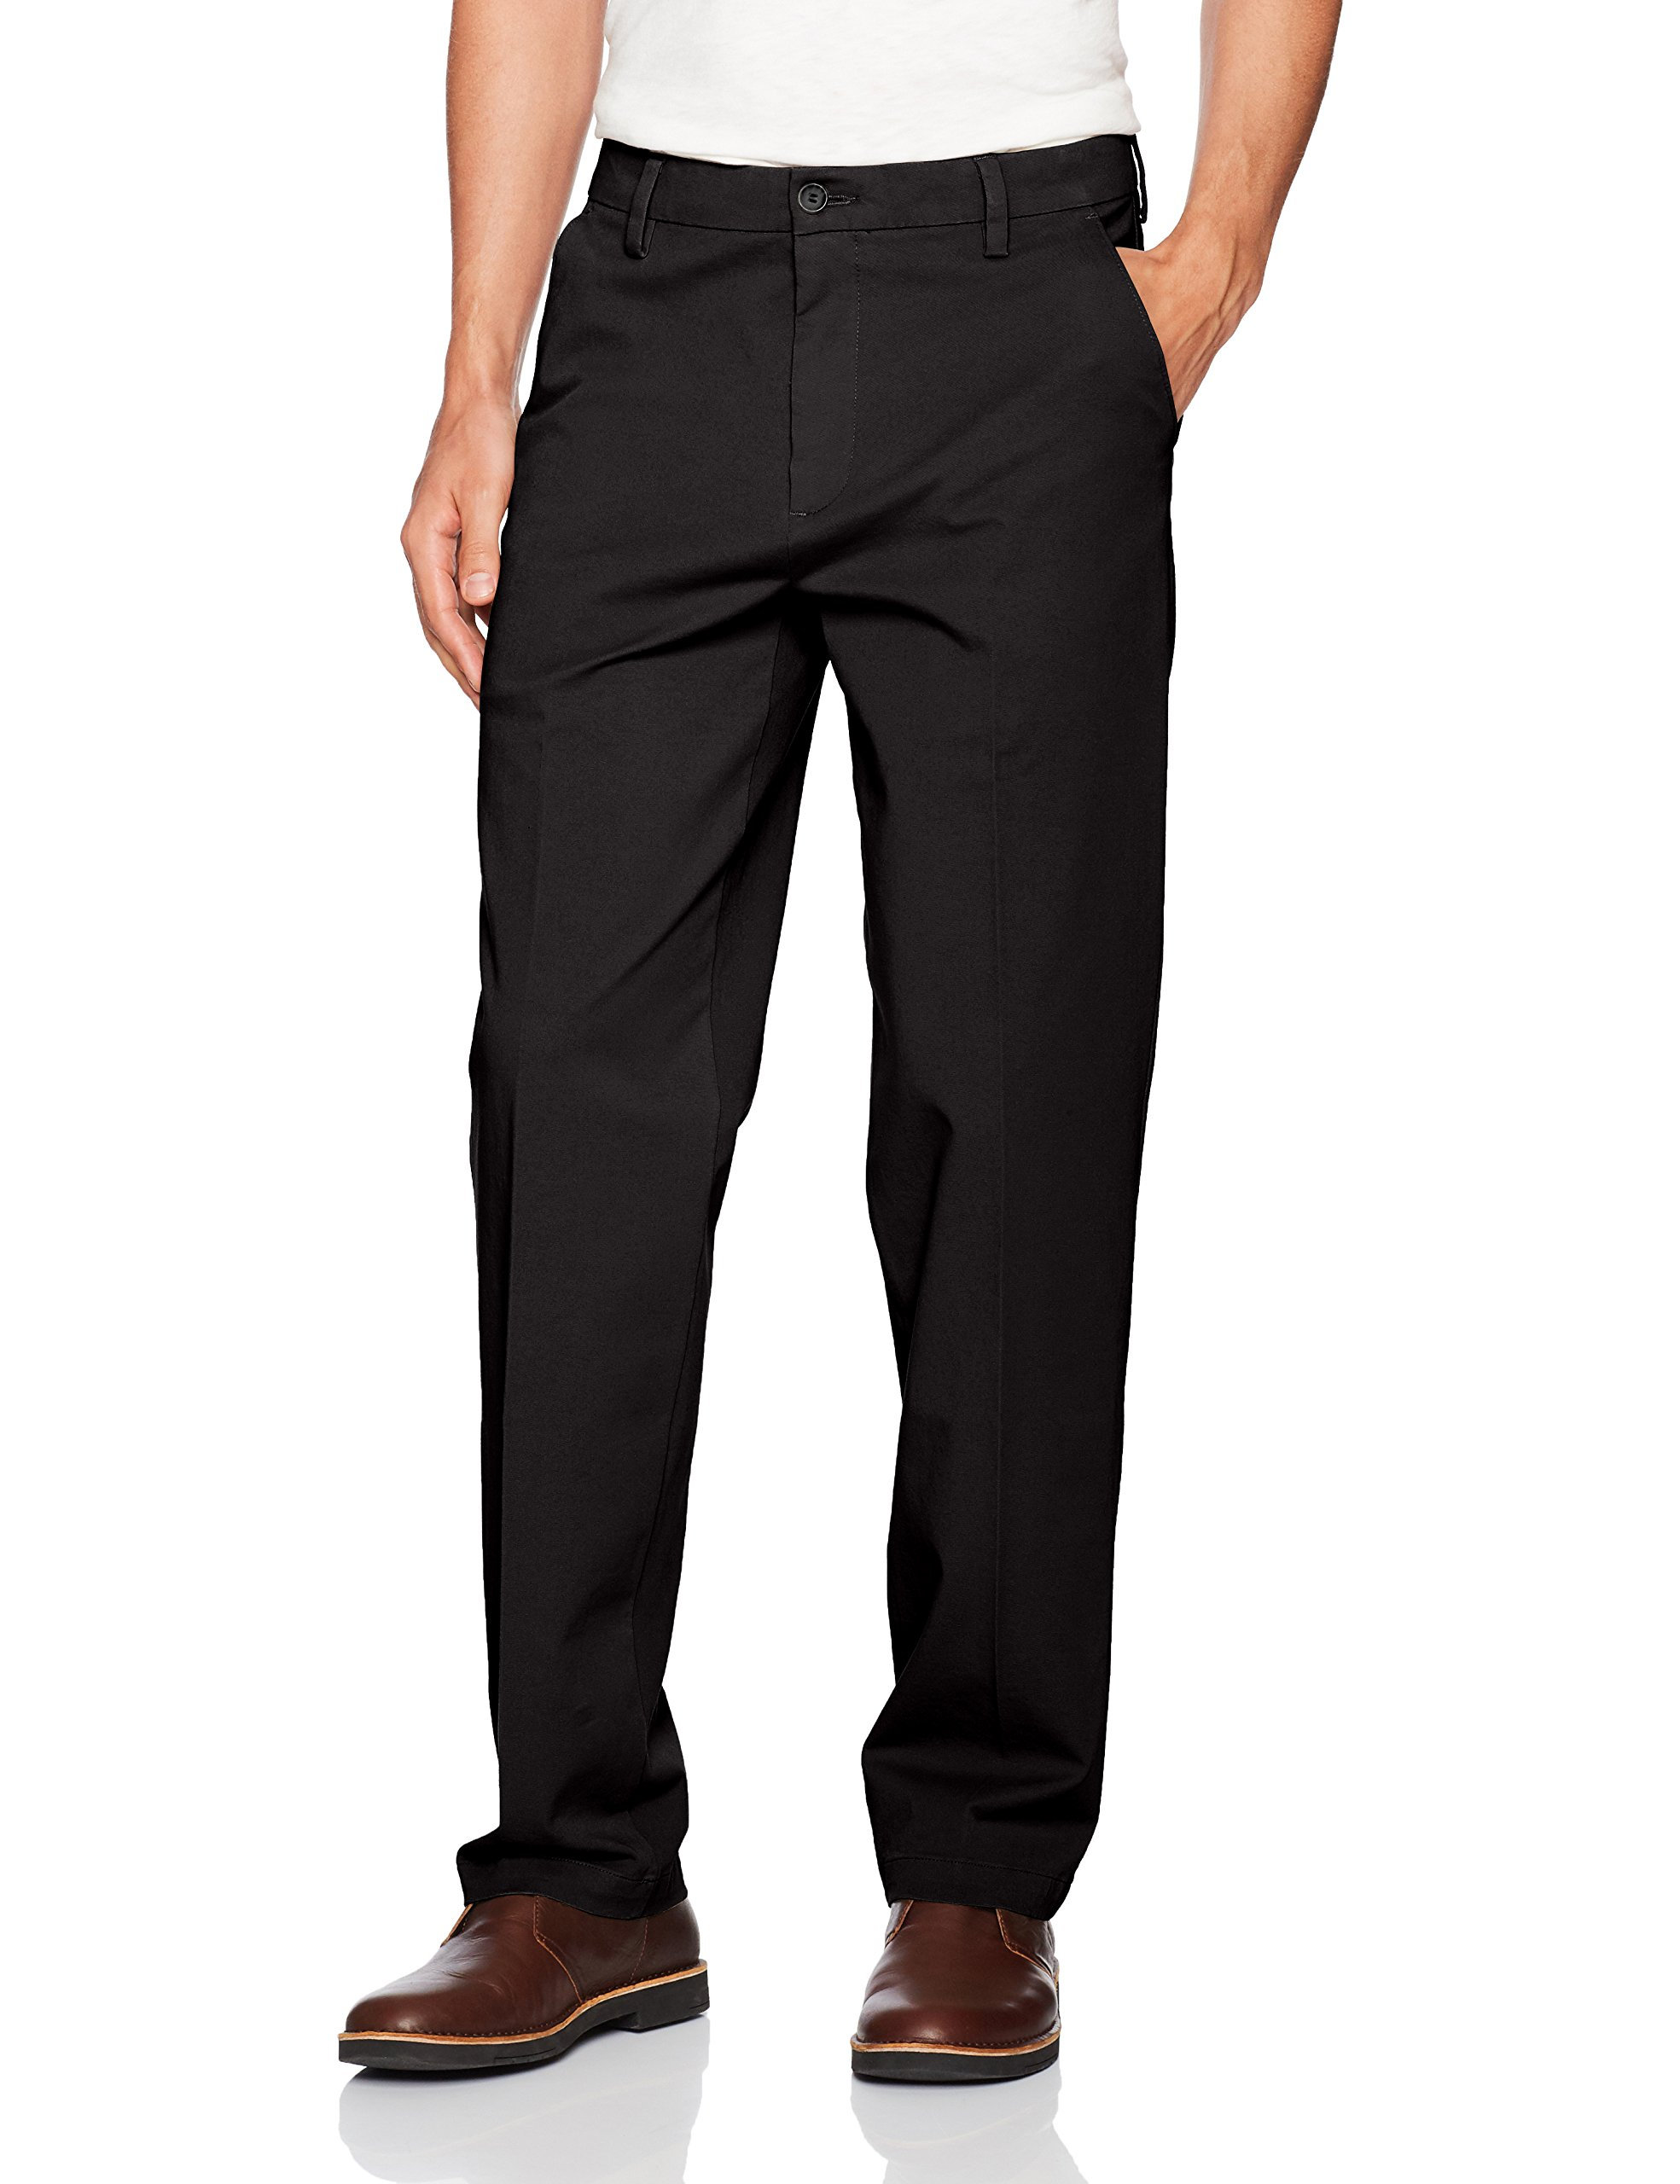 Dockers-Mens-Pants-Black-Size-42X30-Classic-Fit-Khakis-Chinos-Stretch